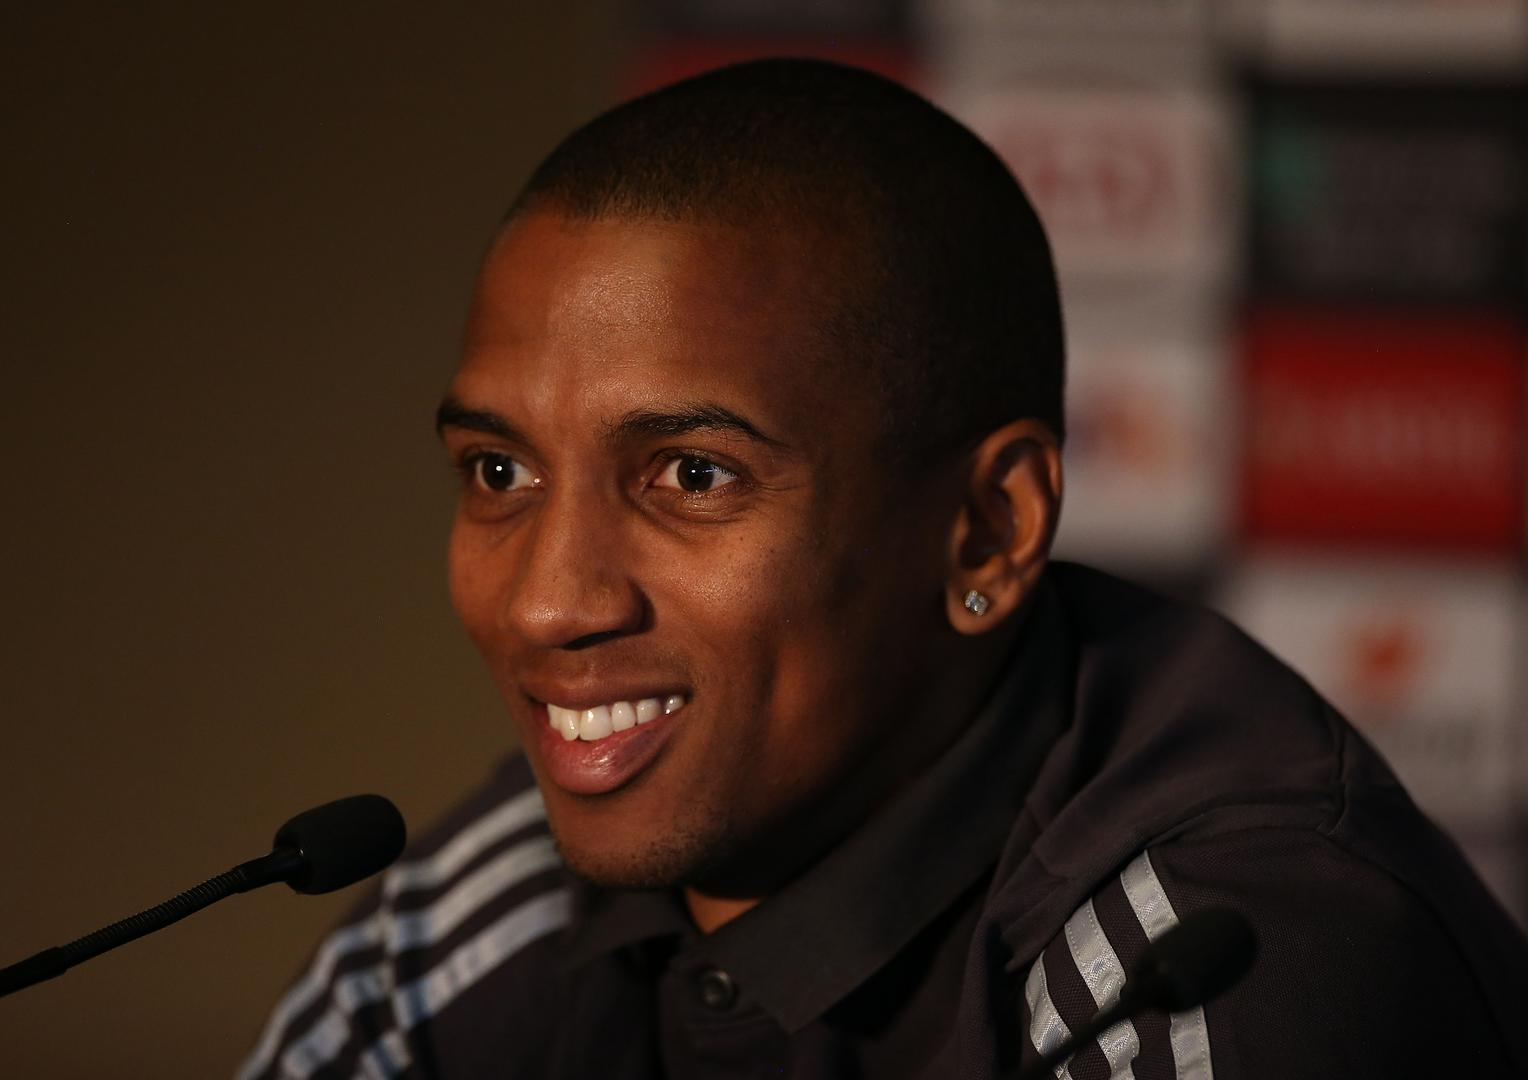 Ashley Young speaking during Manchester United's press conference.